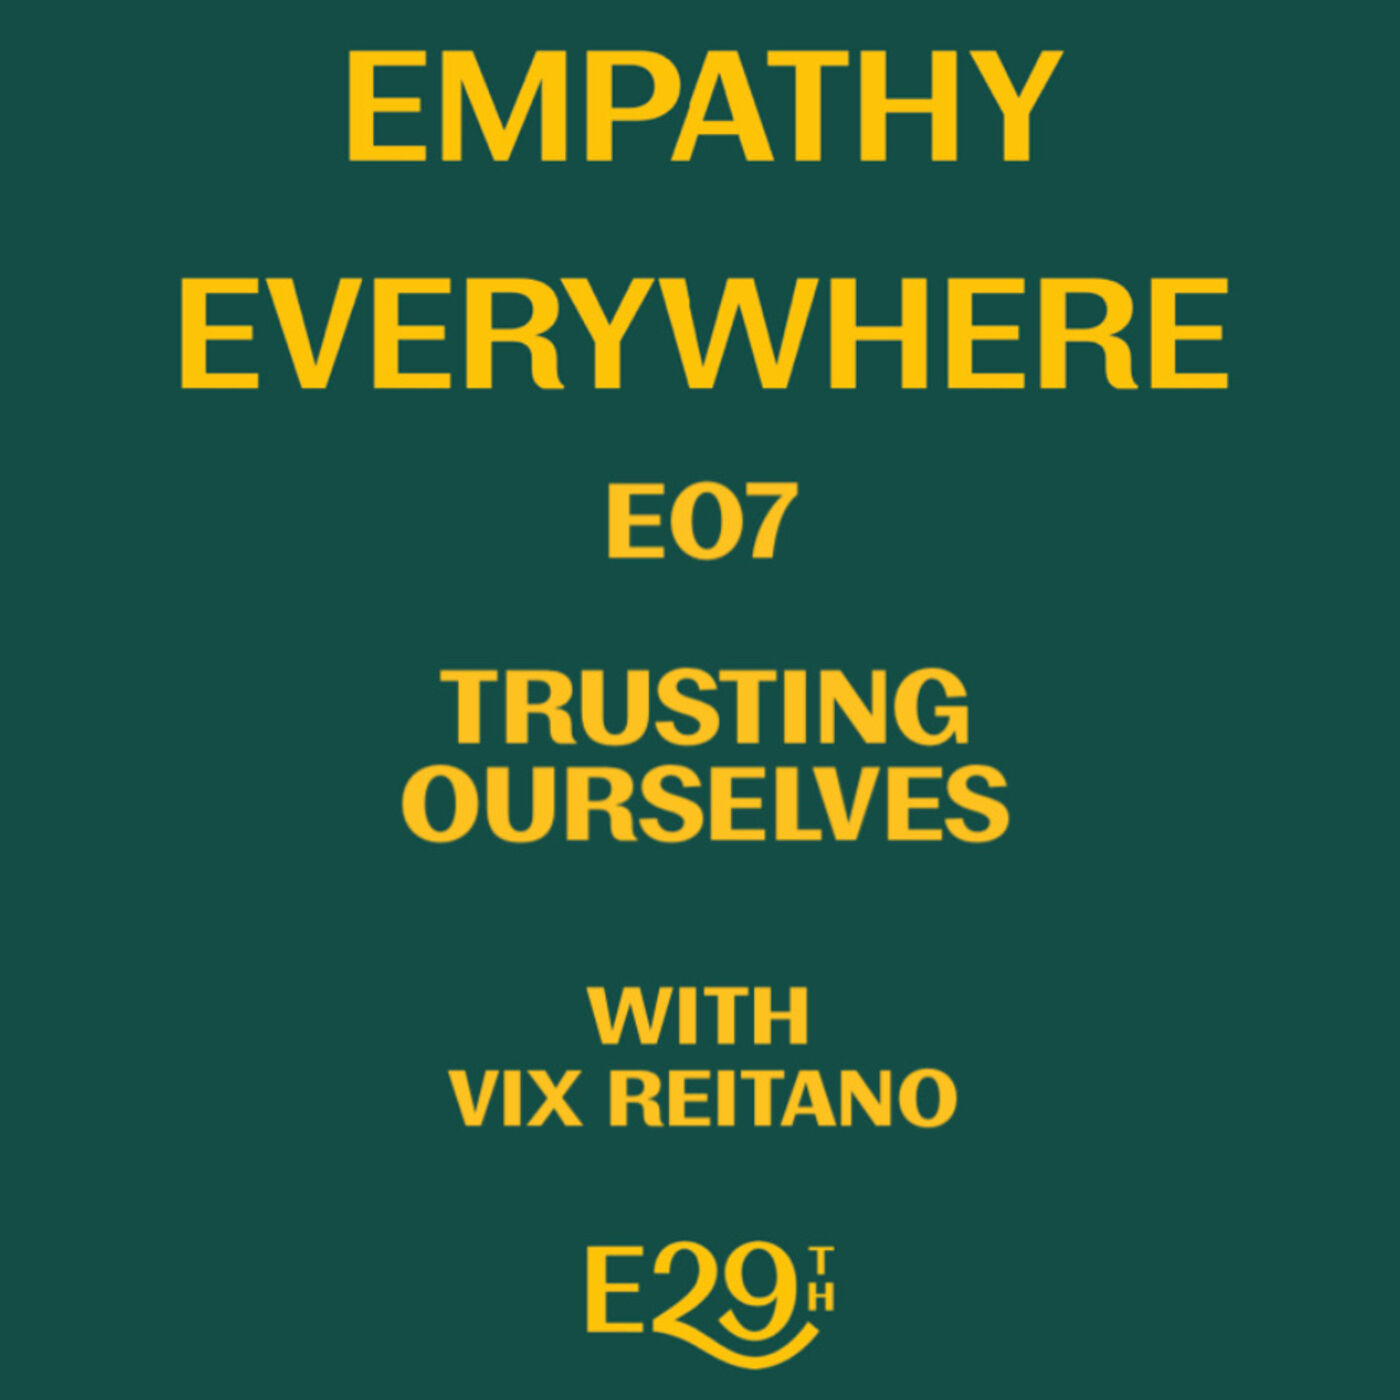 E07 - Trusting Ourselves